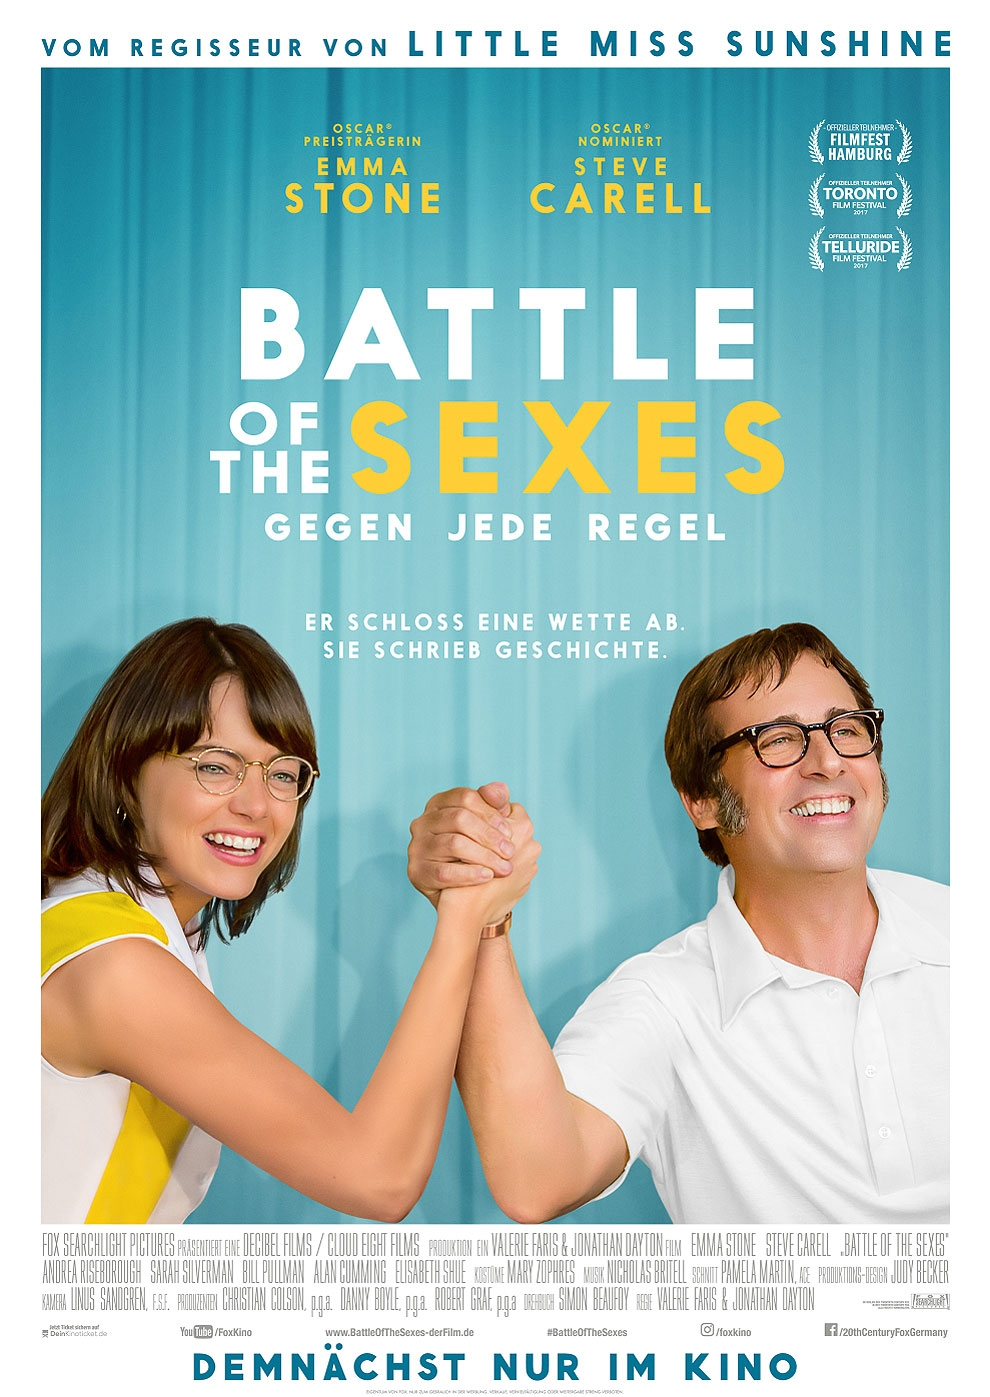 Battle of the Sexes - Gegen jede Regel (Poster)